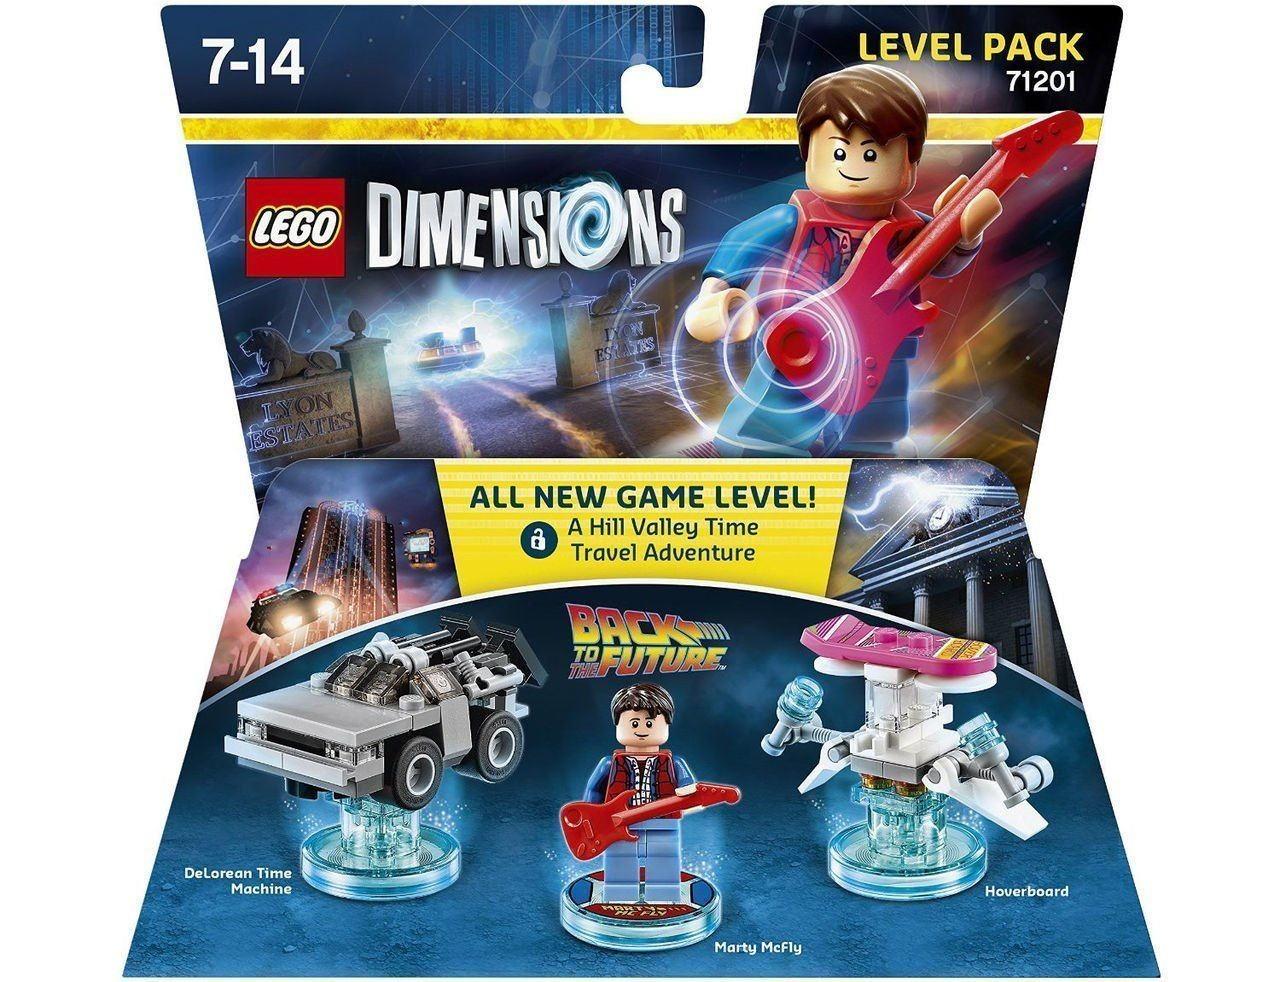 LEGO Dimensions Level Pack - Back to the Future (DeLorean Time Machine, Marty McFly, Hoverboard) | LEGO Измерения